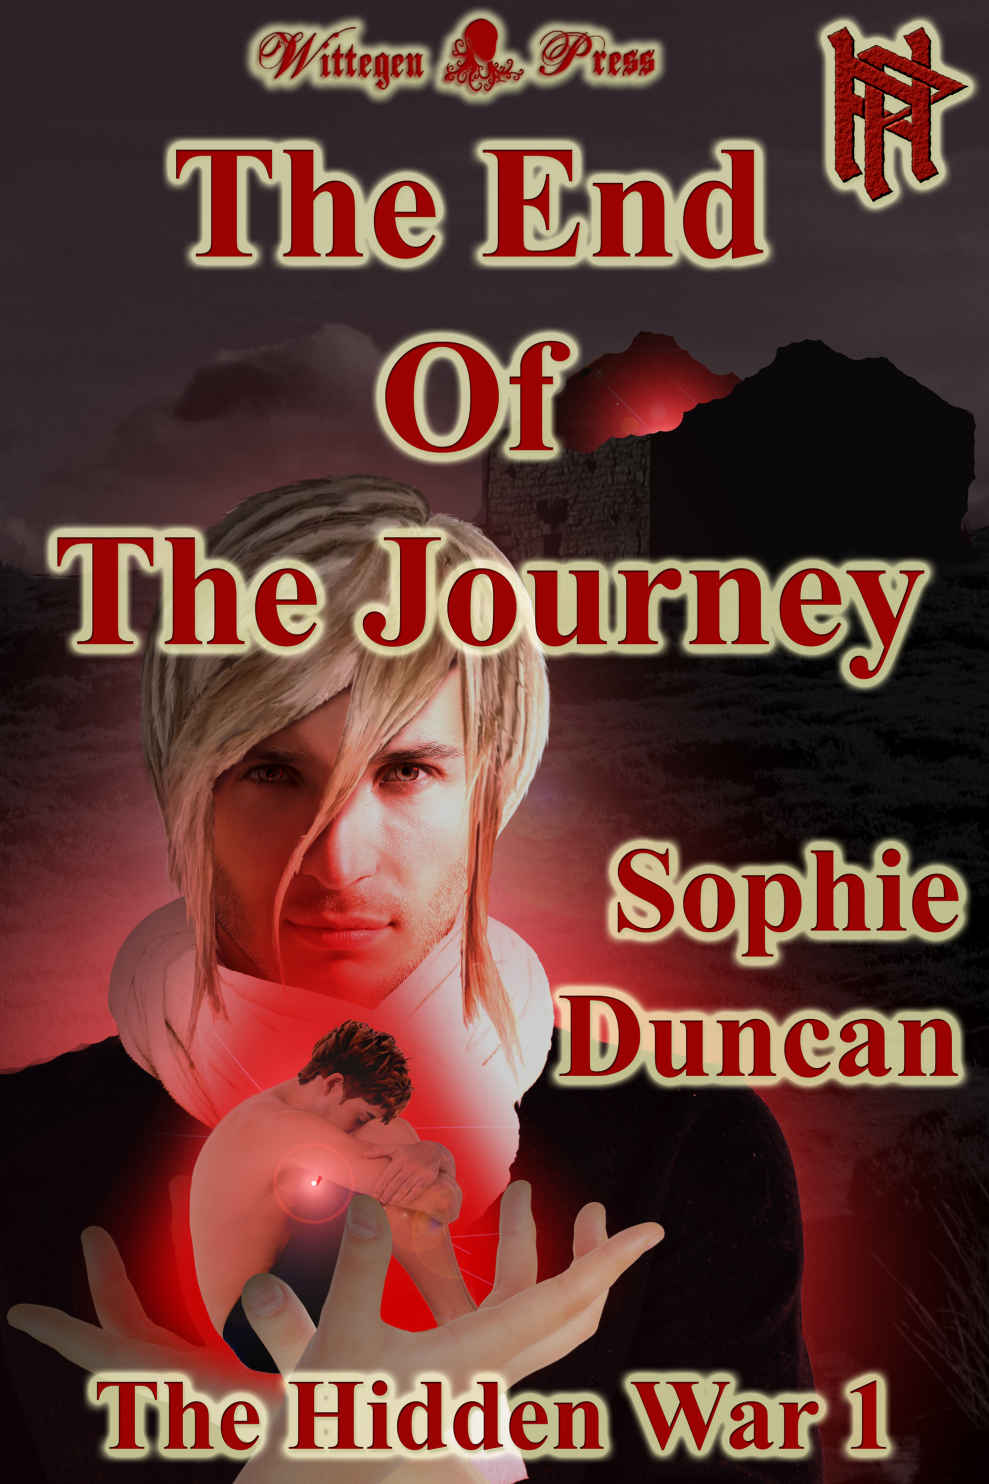 The End of The Journey (The Hidden War #1) by Sophie Duncan